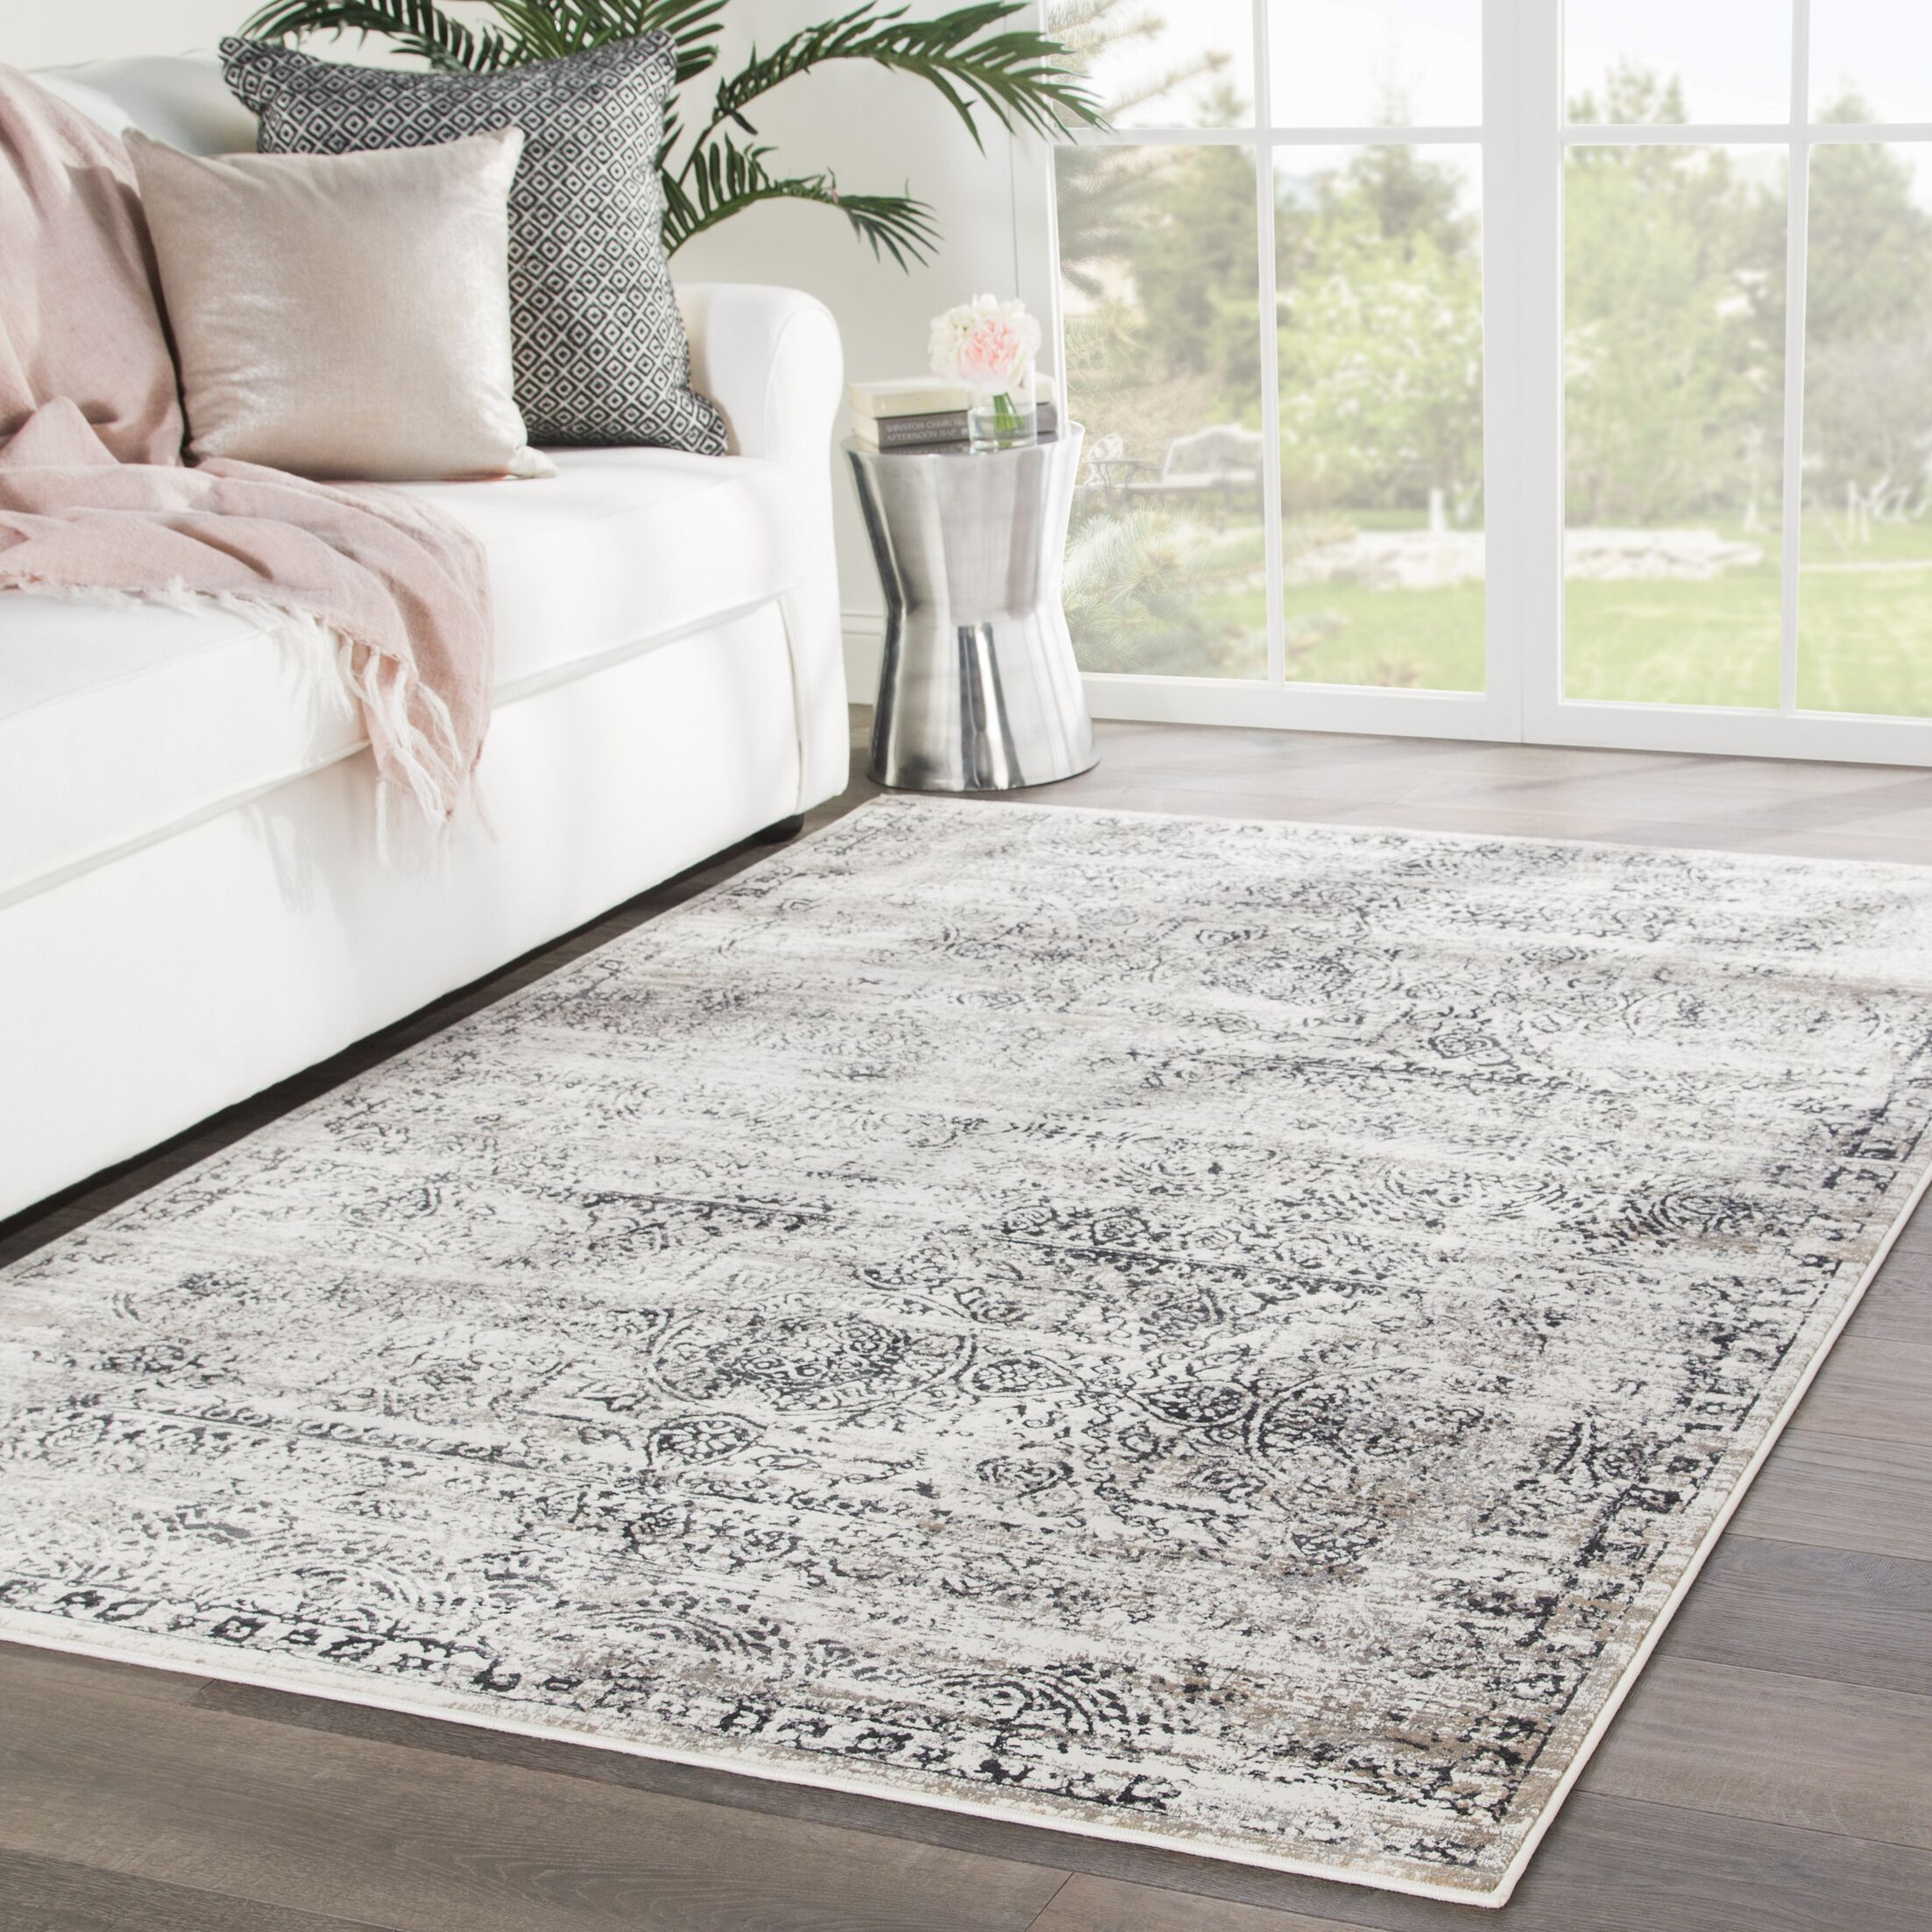 Farview Beige/Gray Area Rug Rug Size: Rectangle 7'6